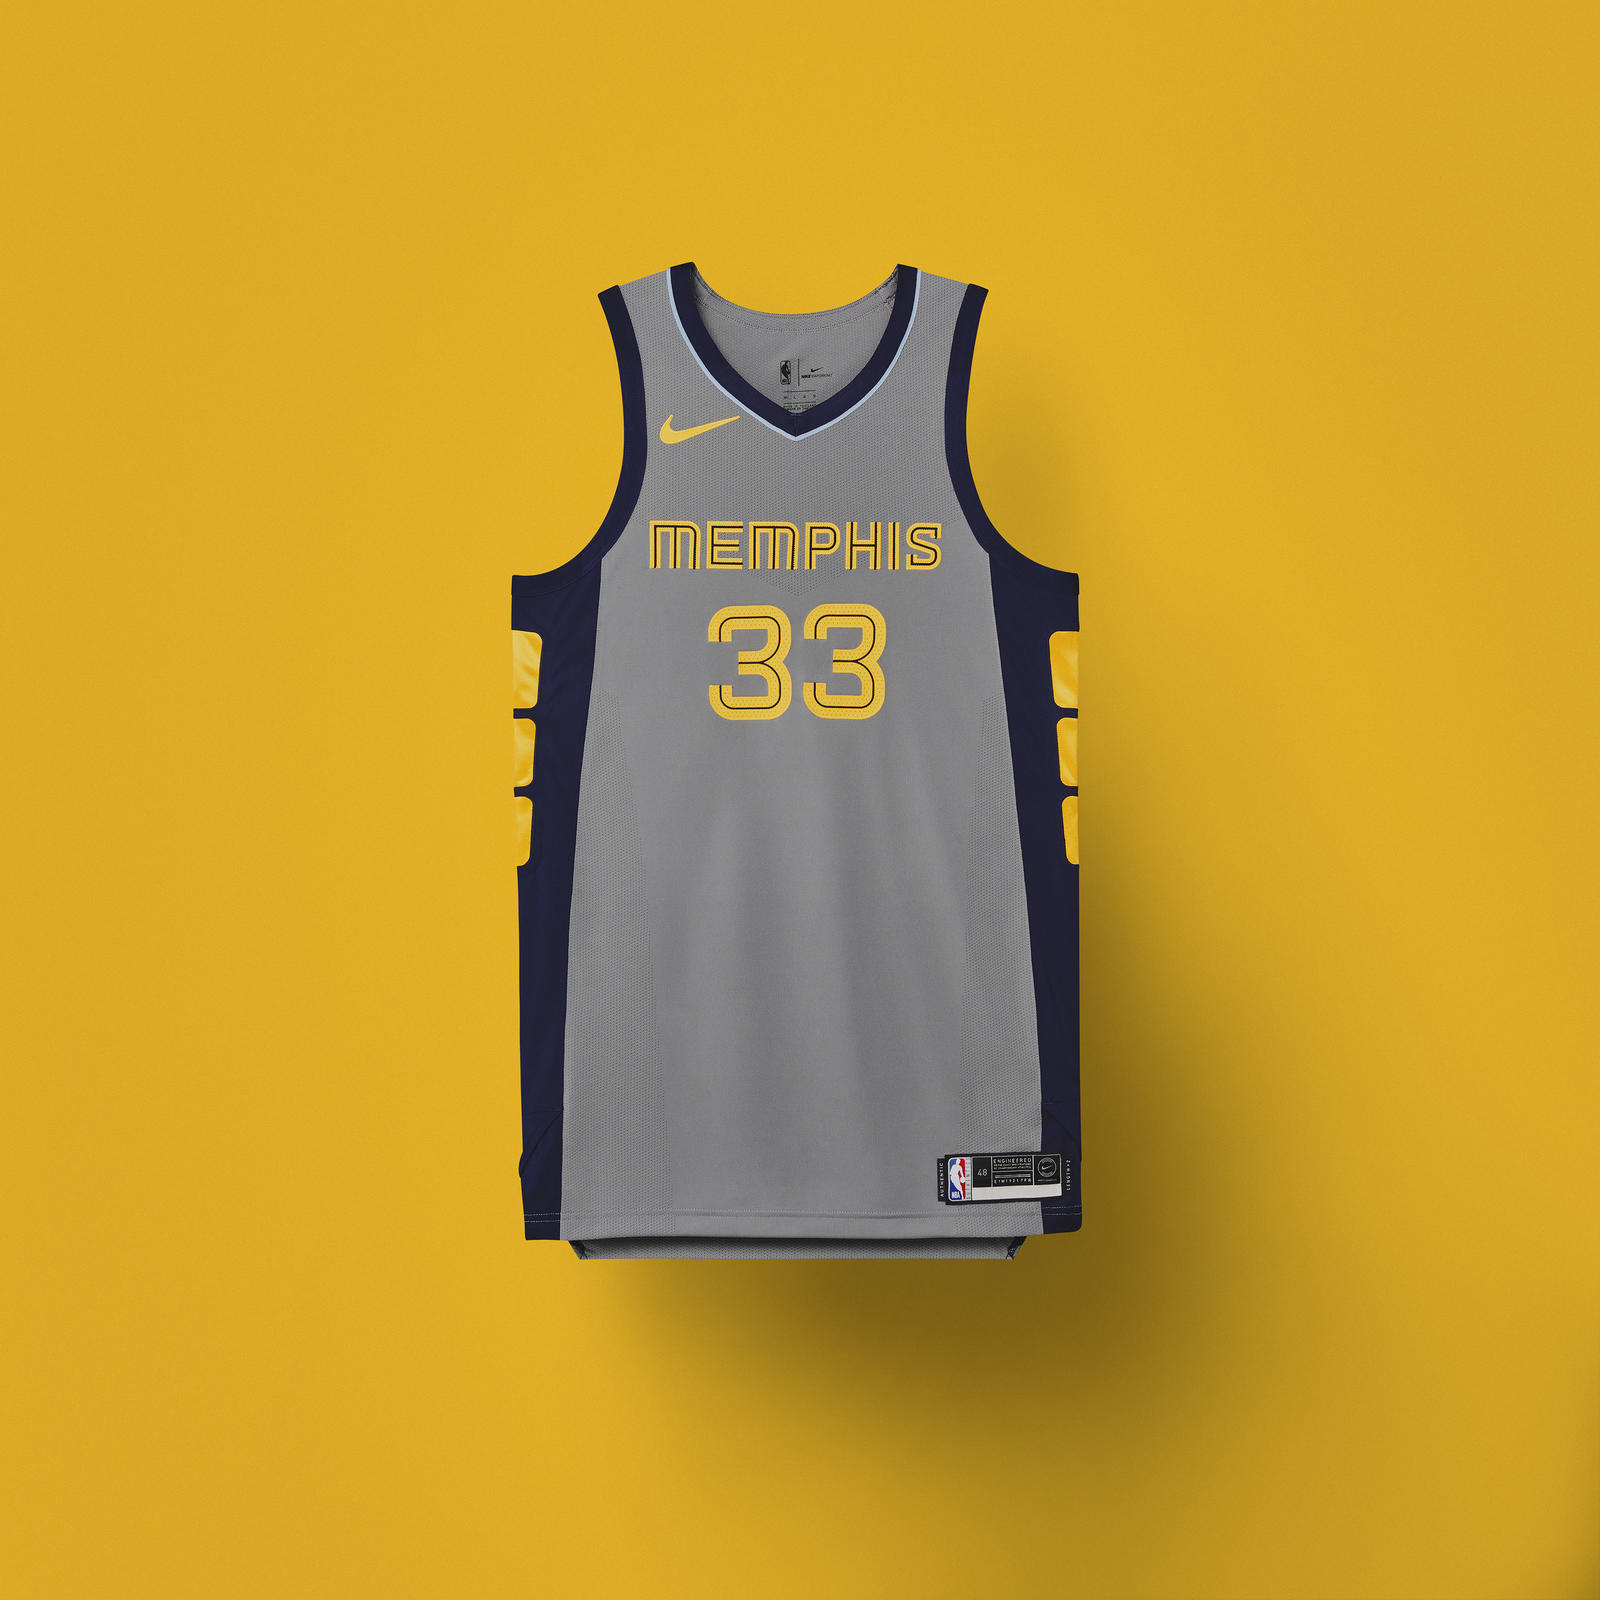 c5fd8d9e36c Ranking every 'City Edition' jersey